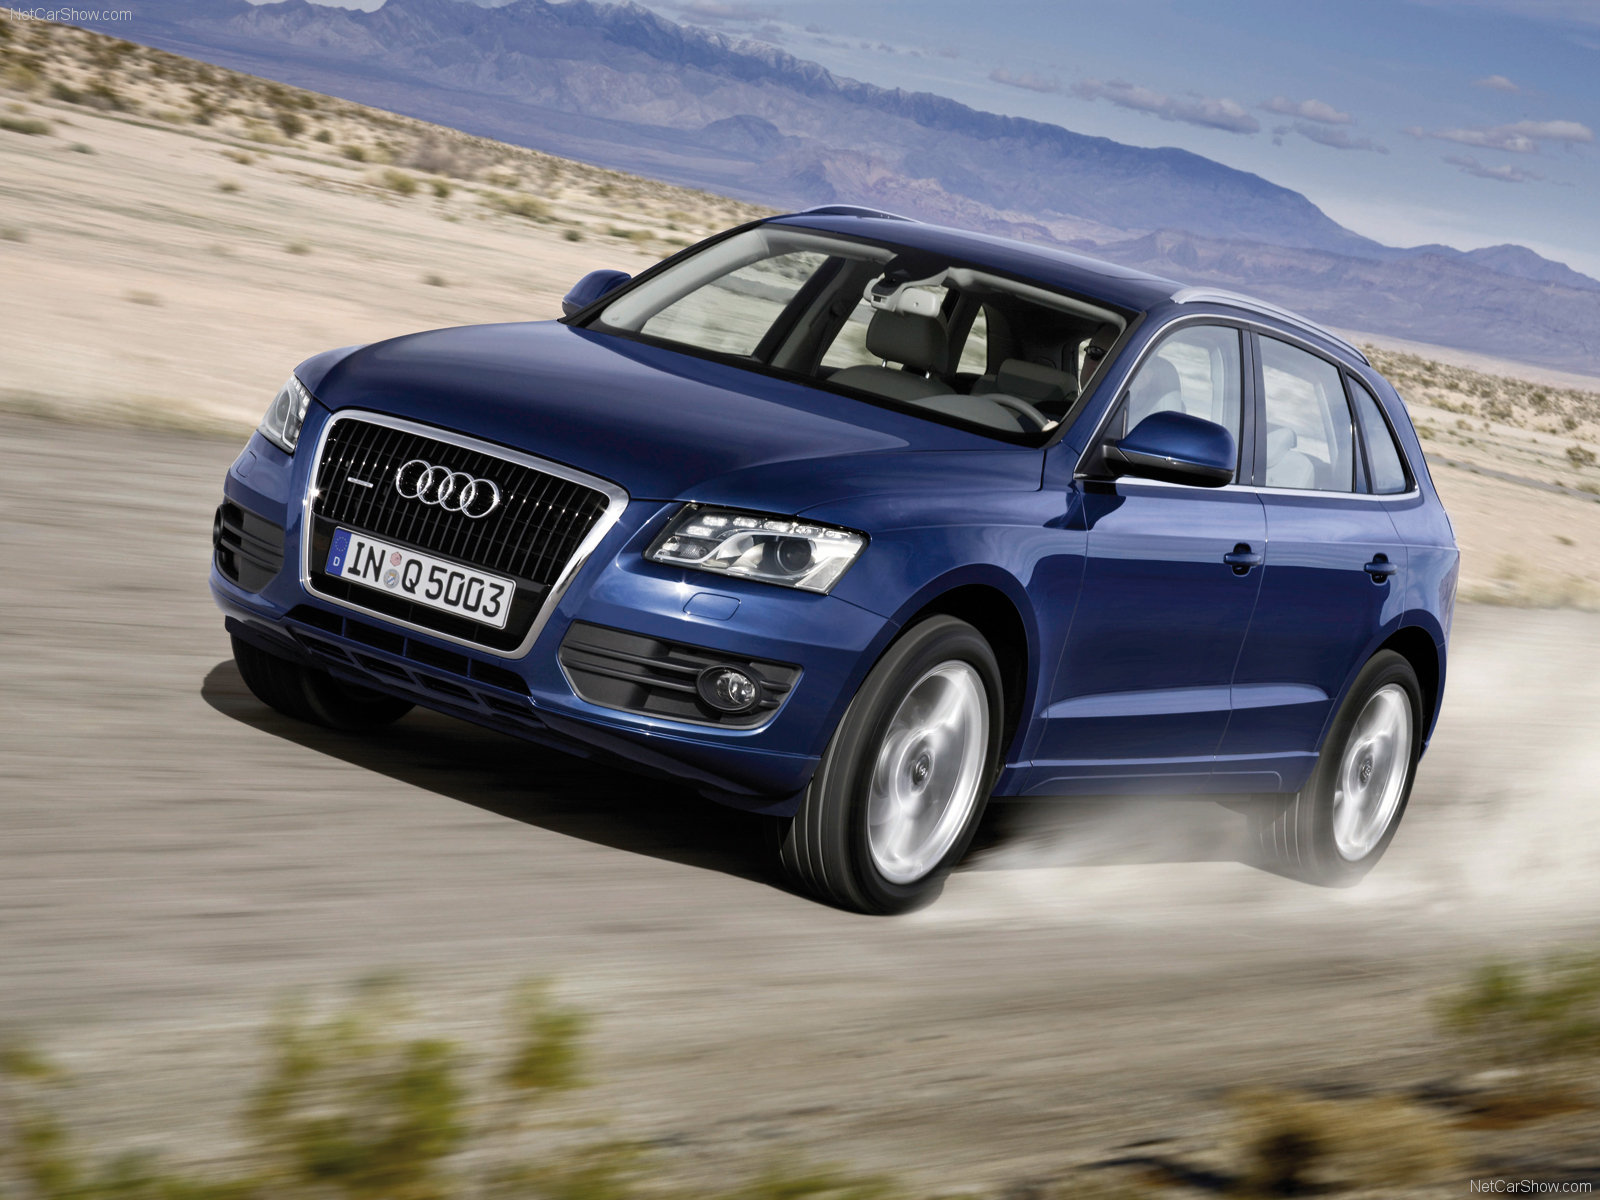 Audi Q Prices In India All Variants The World Of Audi - Audi q5 price